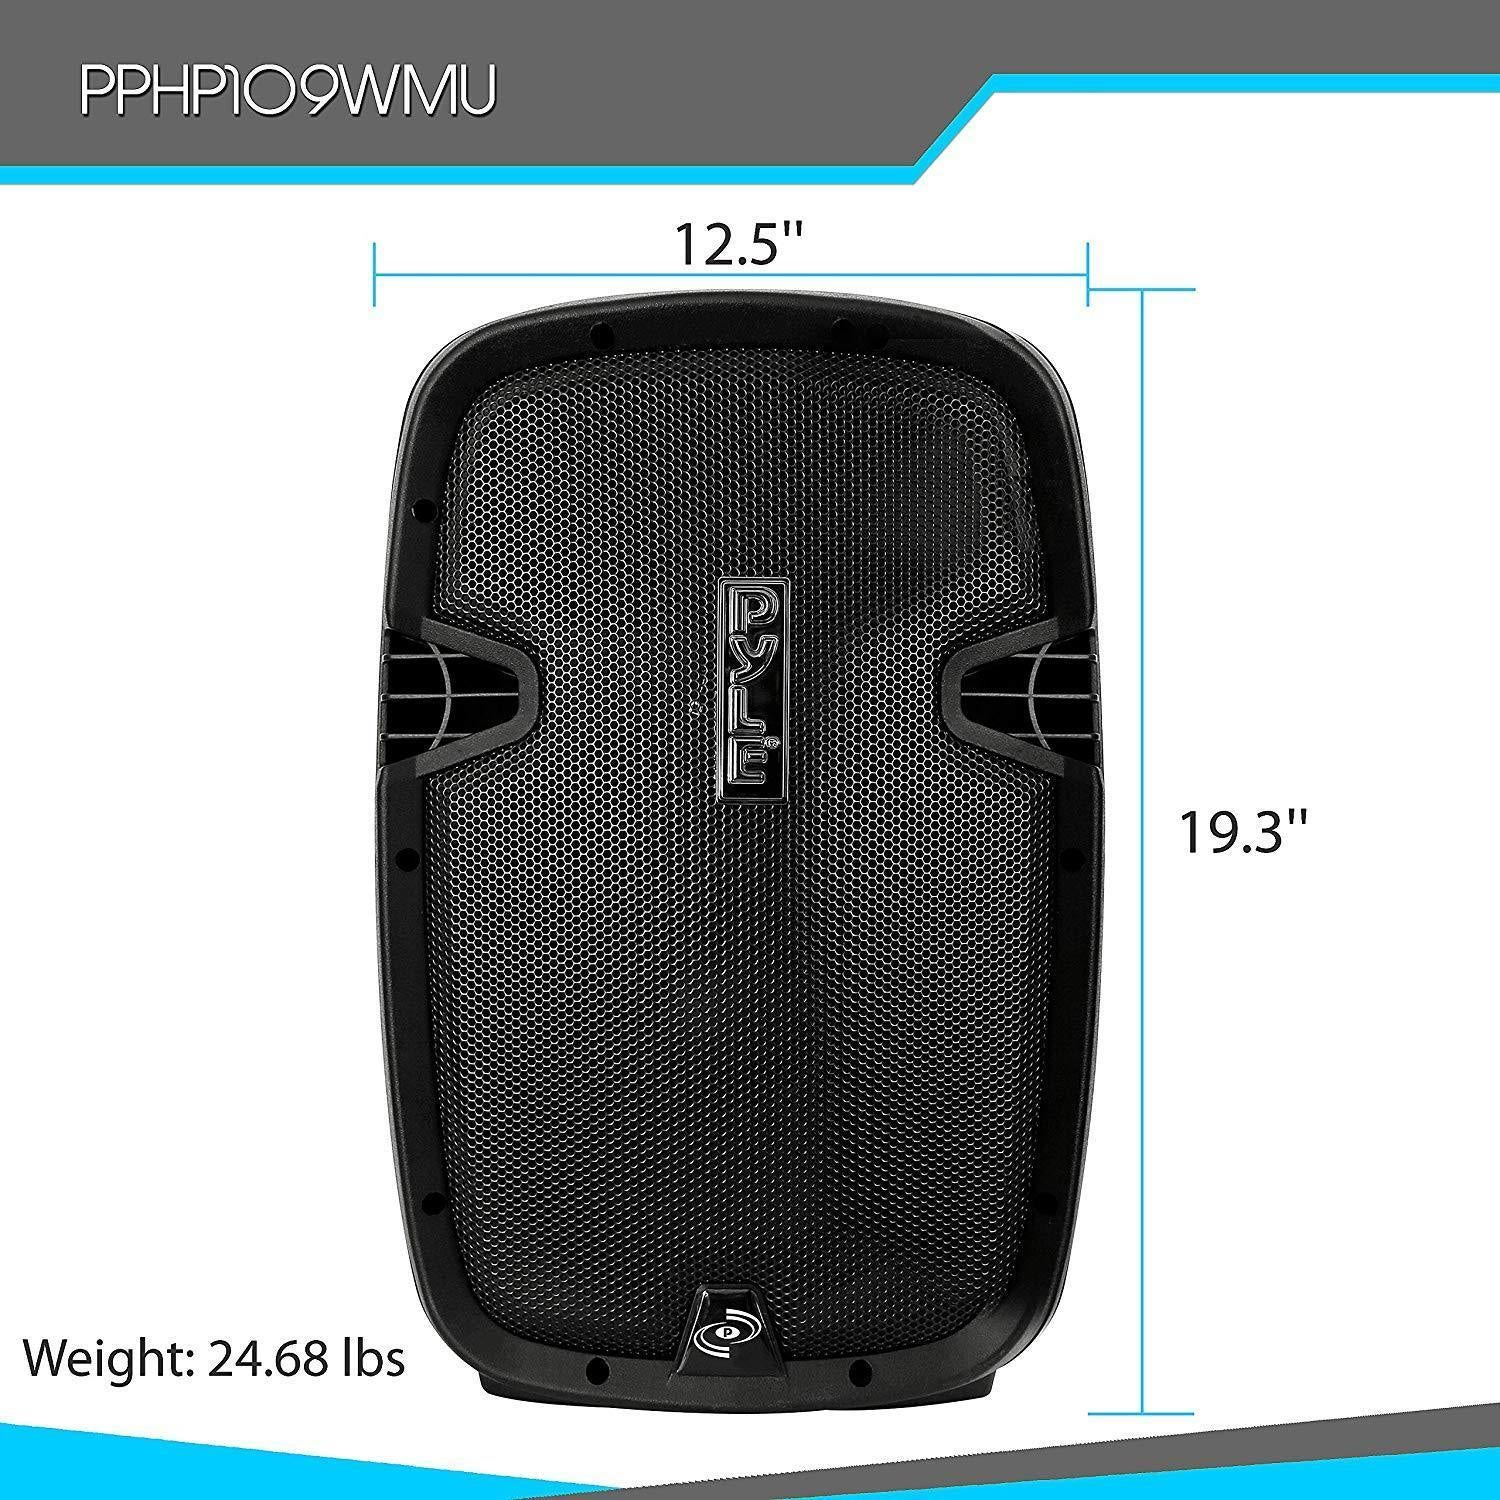 Pyle Wireless & Portable Bluetooth PA Speaker, Active-Powered Loudspeaker System, FM Stereo Radio, Built-in Rechargeable Battery, USB/SD Readers, Includes Handheld Microphone, Recording Ability, FM Radio, 1000 Watt, 10'' Subwoofer (PPHP109WMU)